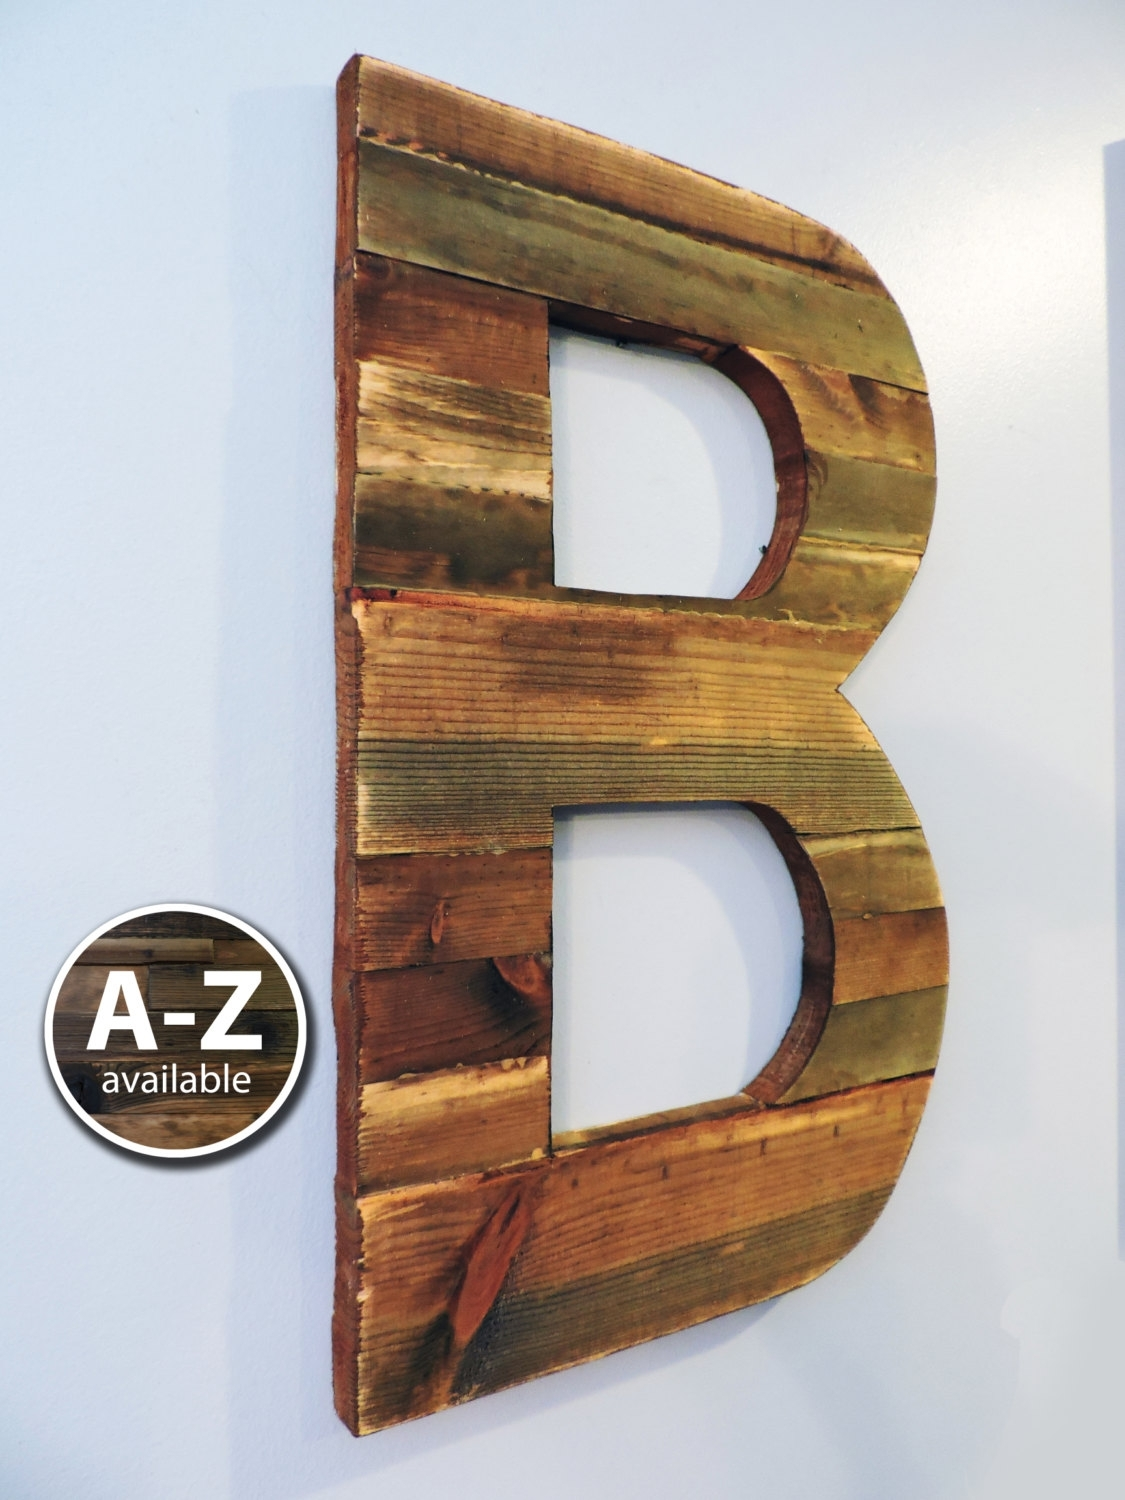 Large Letters For Wall Awes Large Letters For Wall Decor As Metal throughout Metal Letter Wall Art (Image 10 of 20)